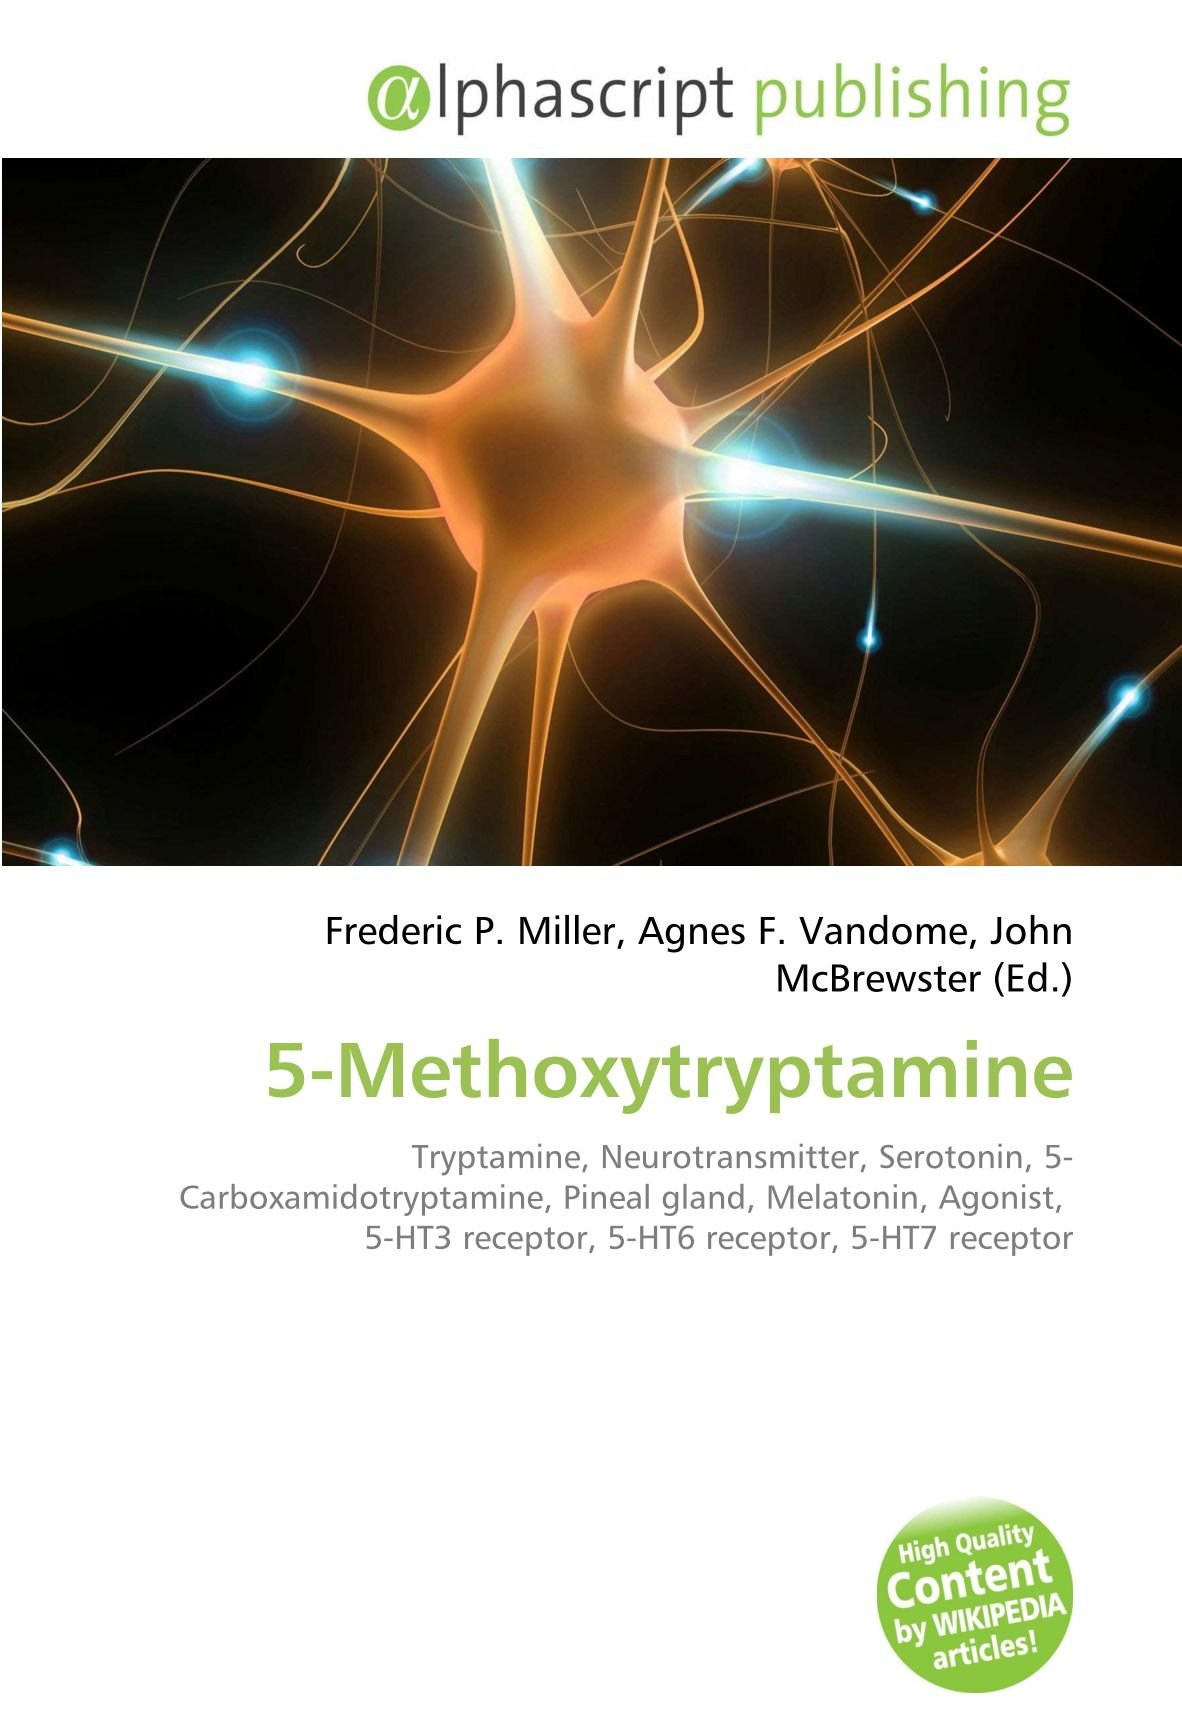 5-Methoxytryptamine: Tryptamine, Neurotransmitter, Serotonin, 5-Carboxamidotryptamine, Pineal gland, Melatonin, Agonist, 5-HT3 receptor, 5-HT6 receptor, ...